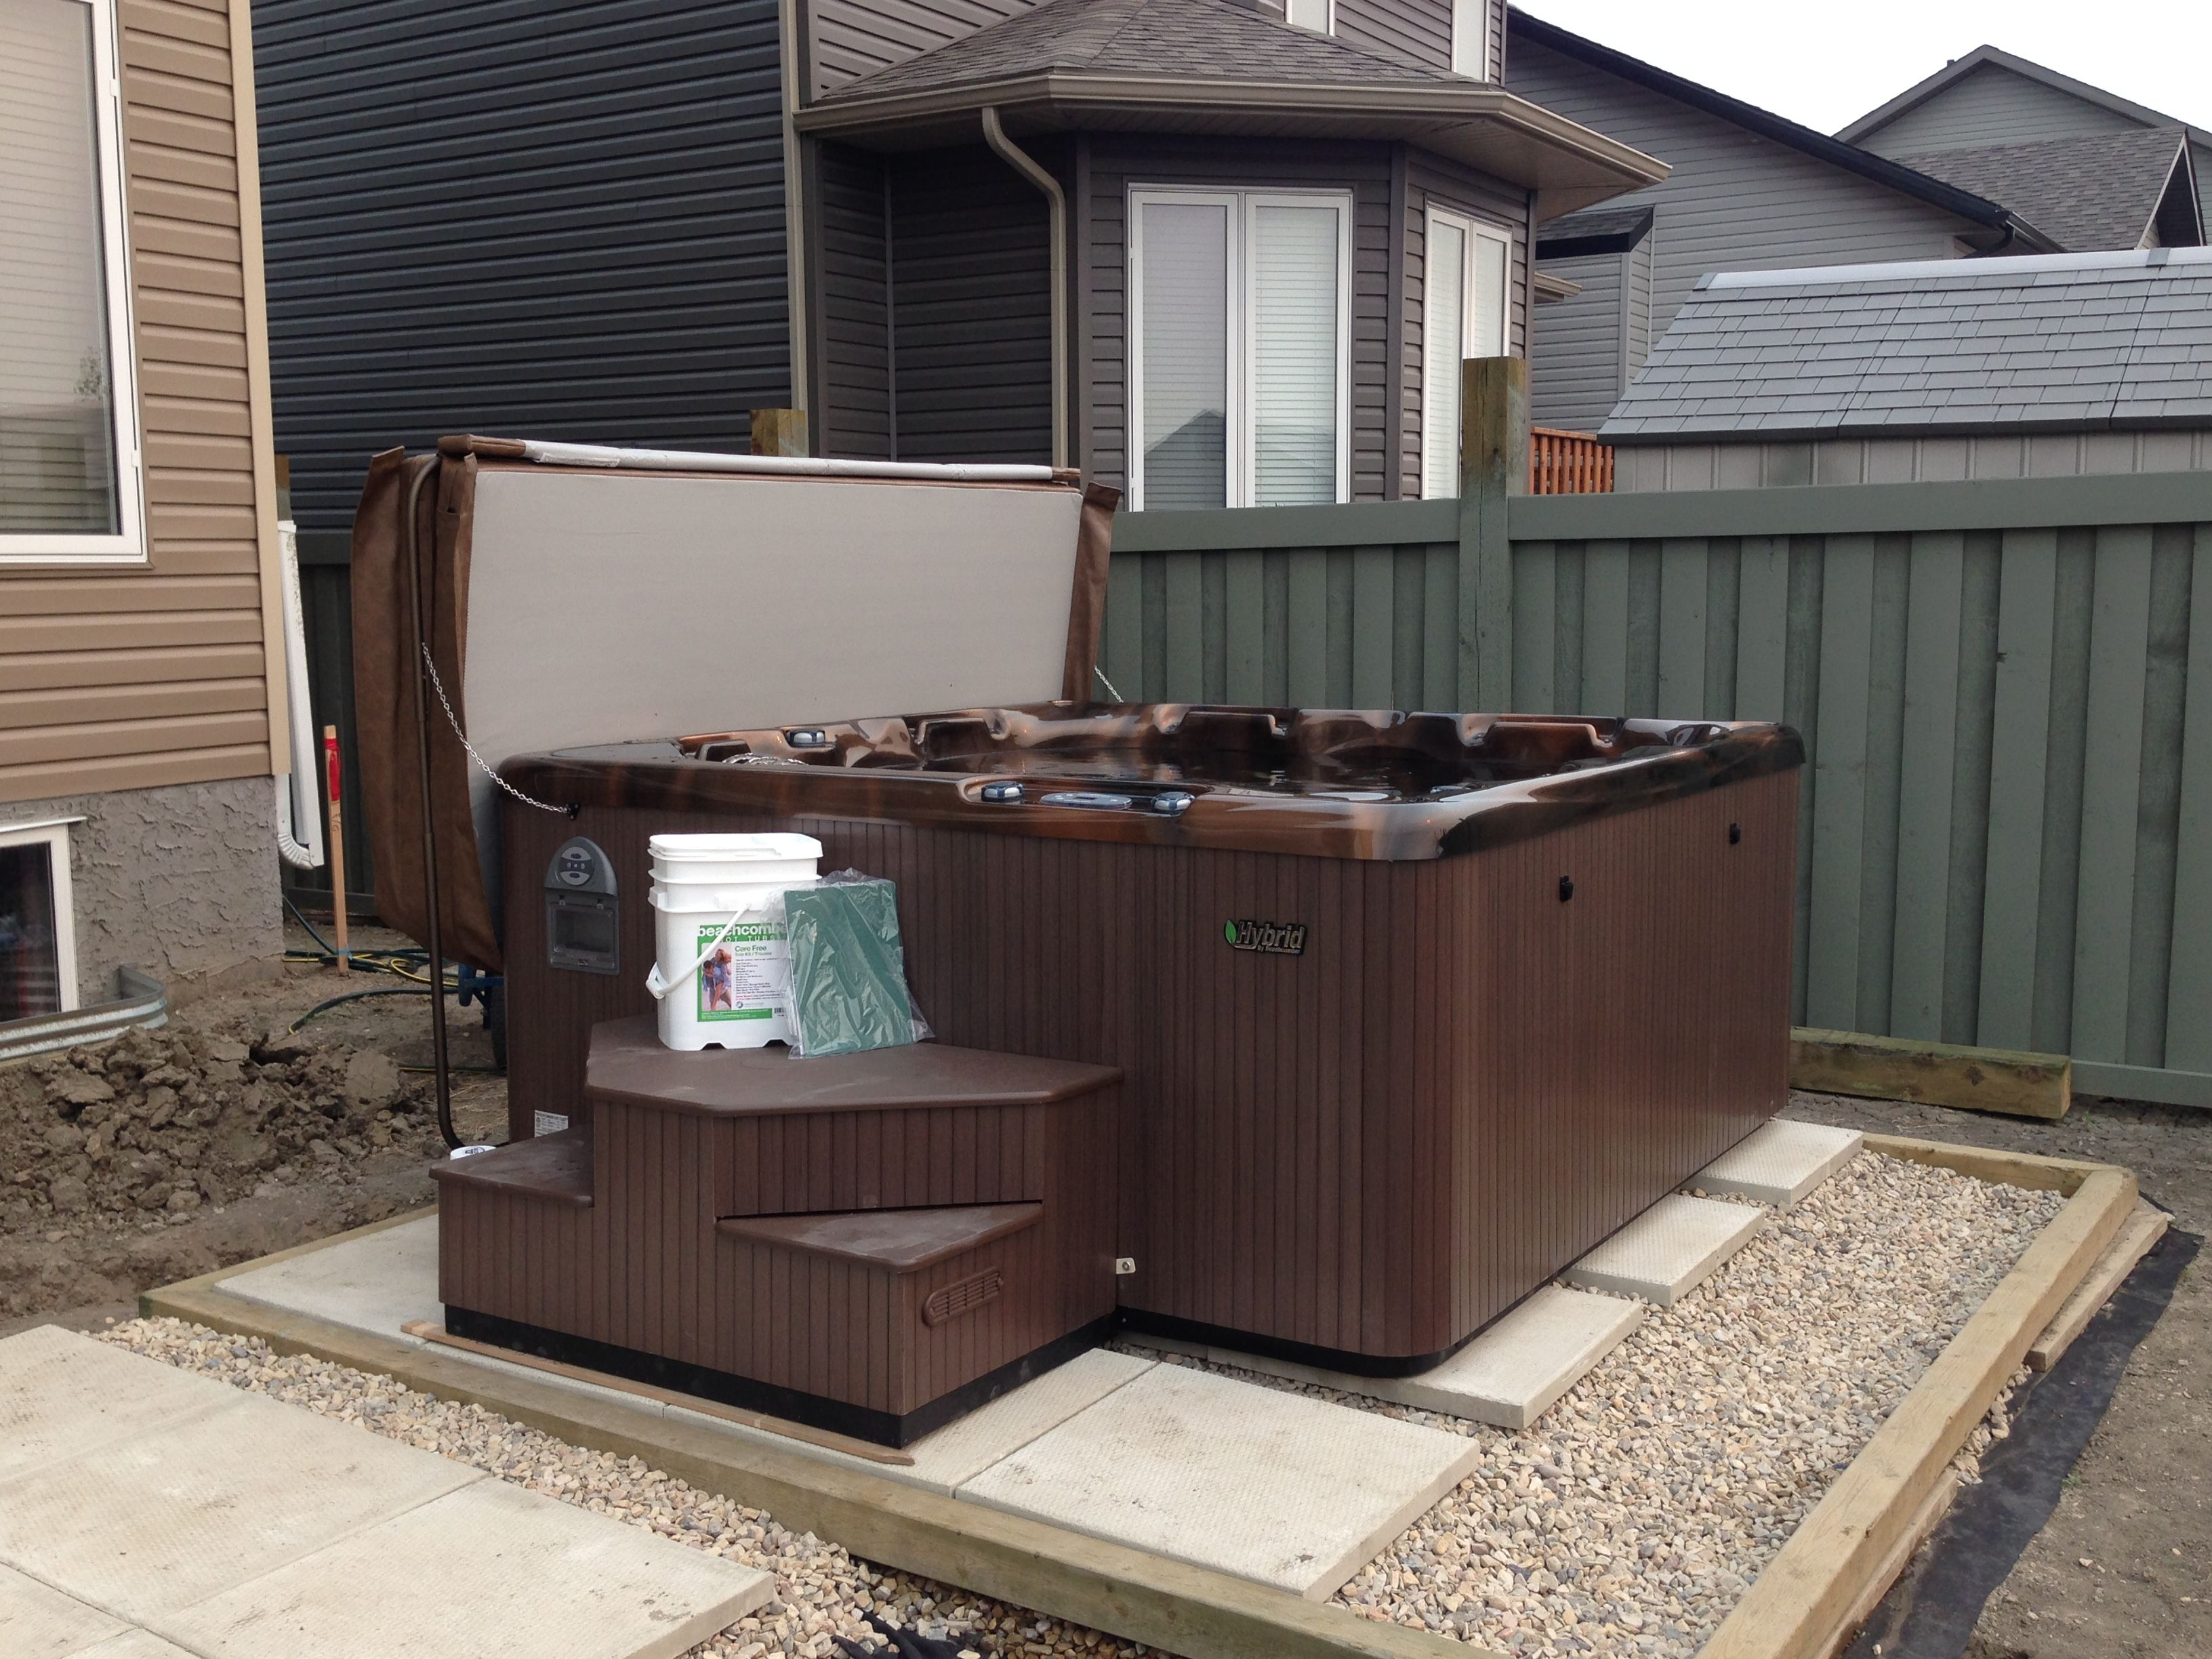 hight resolution of beachcomber model 580 install hot tub patio whistler spas backyard ideas pools